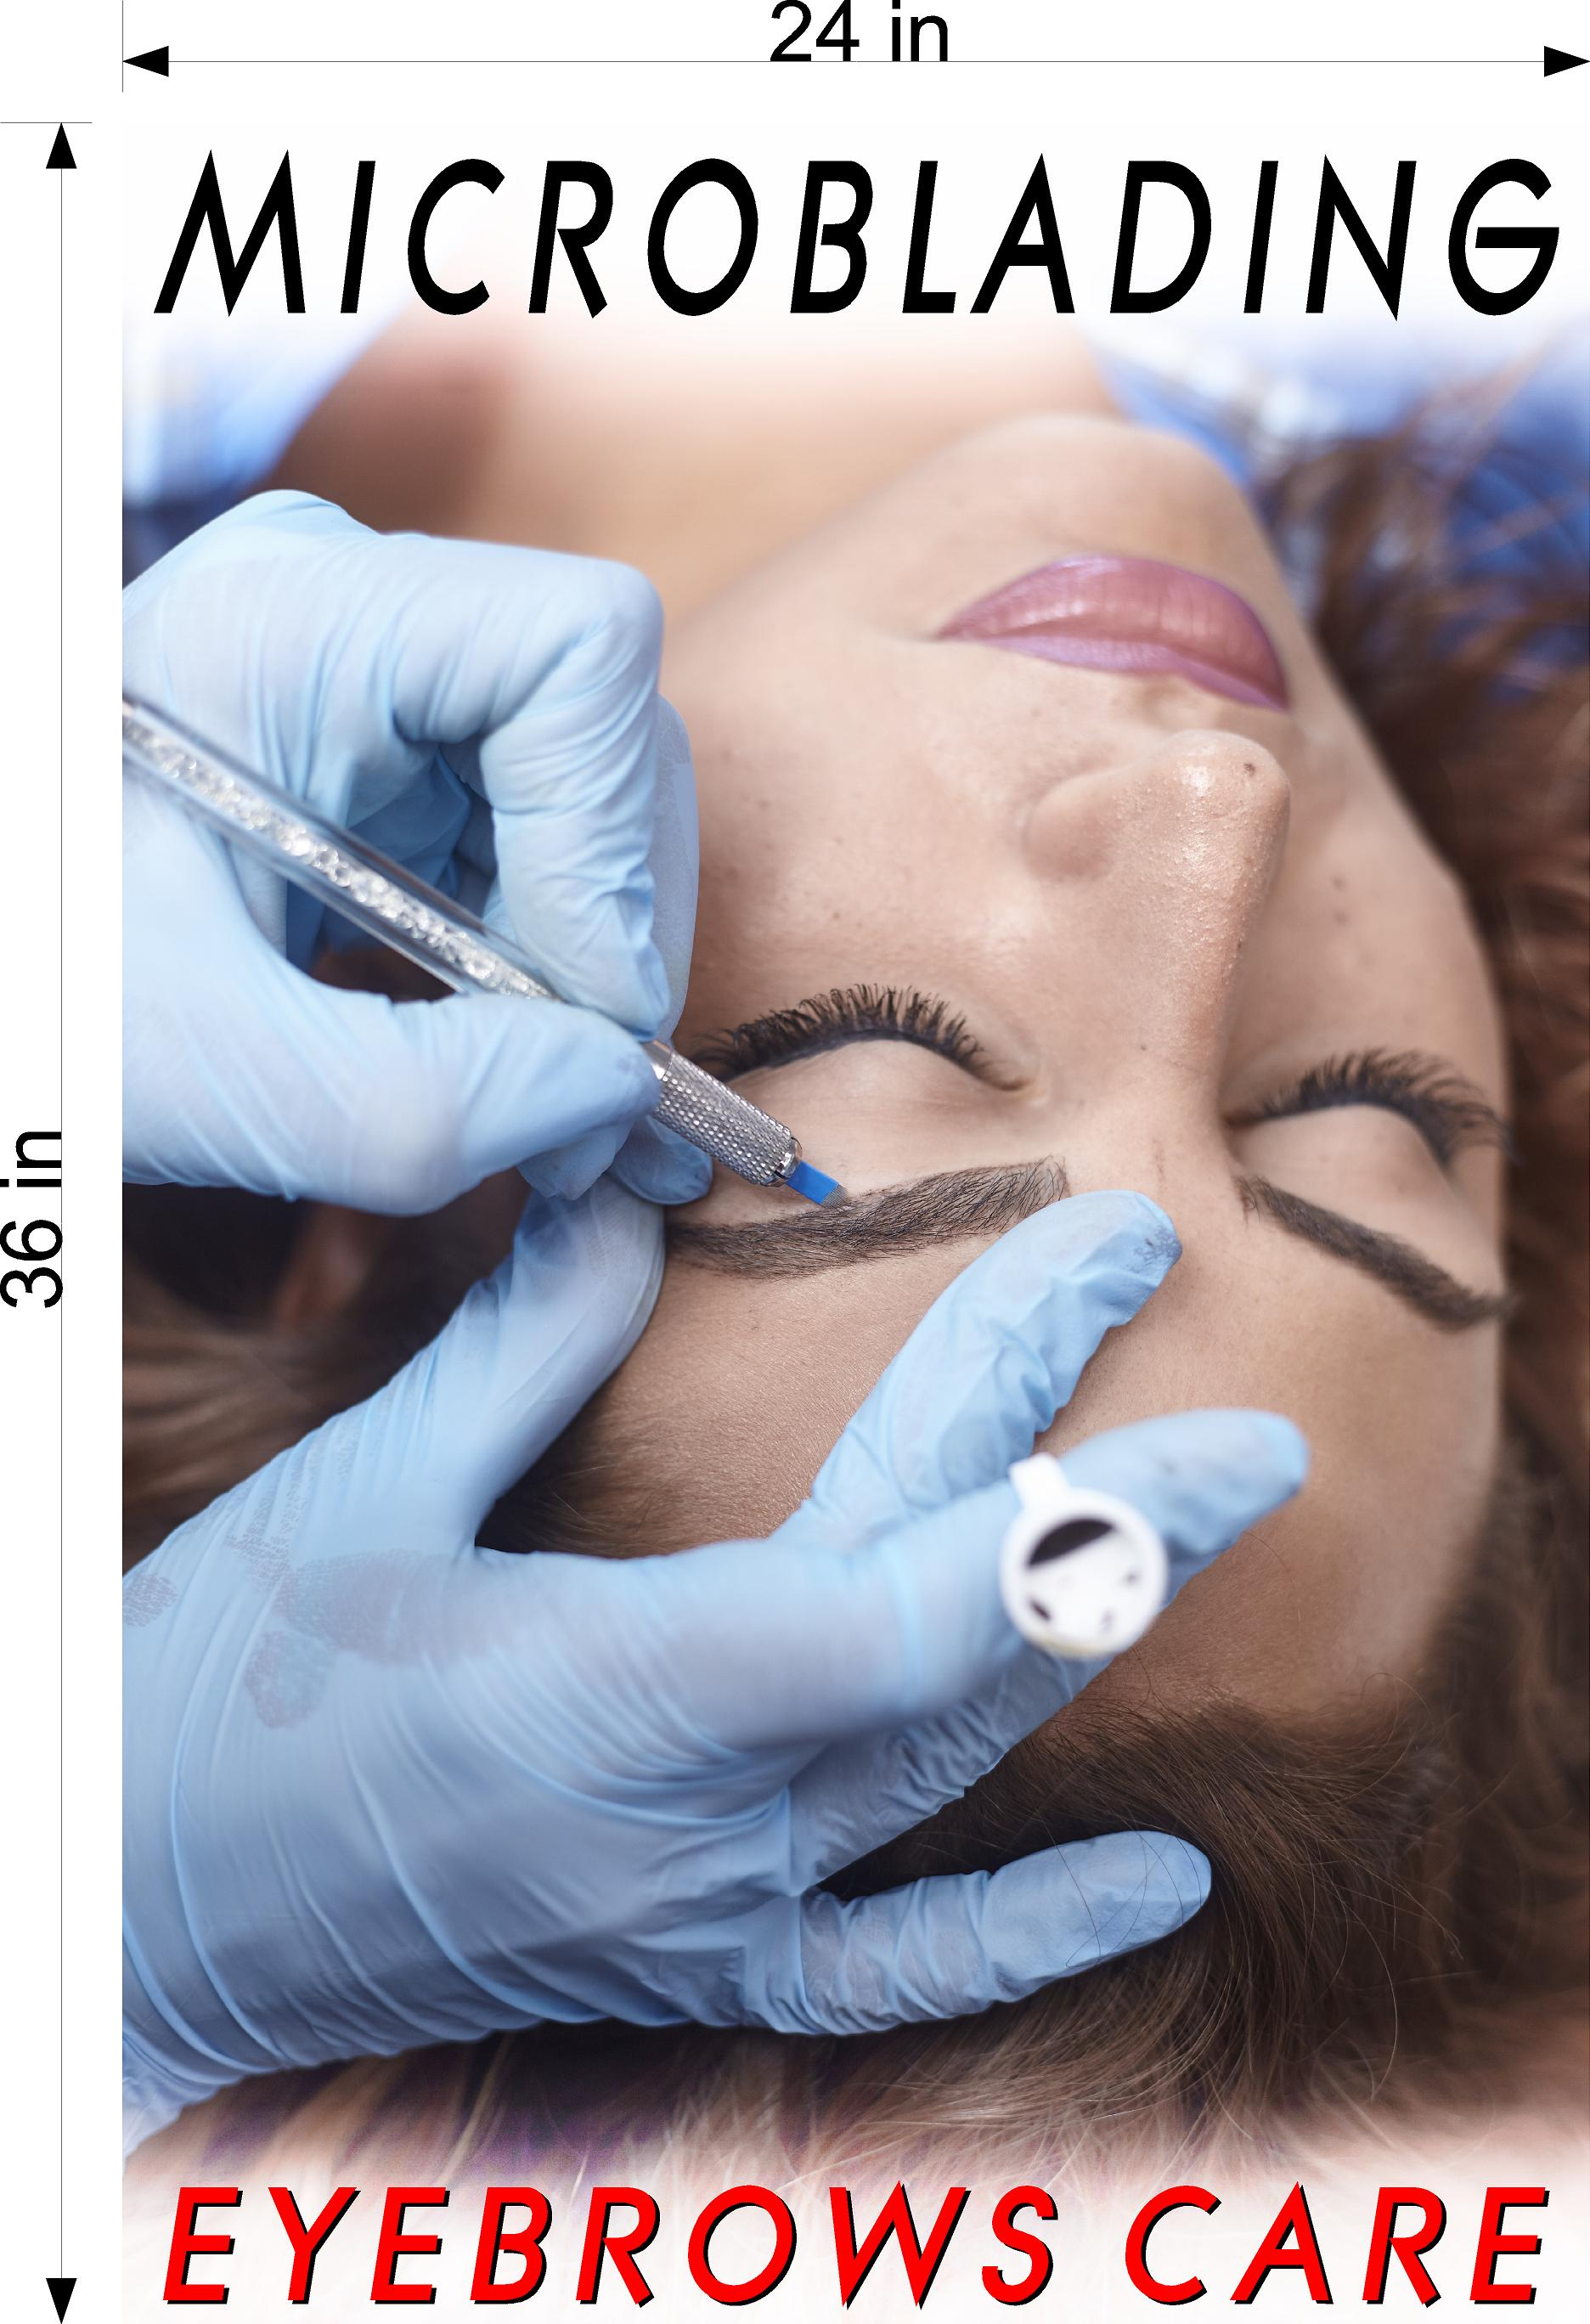 Microblading 07 Photo-Realistic Paper Poster Matte Non-Laminated Permanent Tattoo Vertical